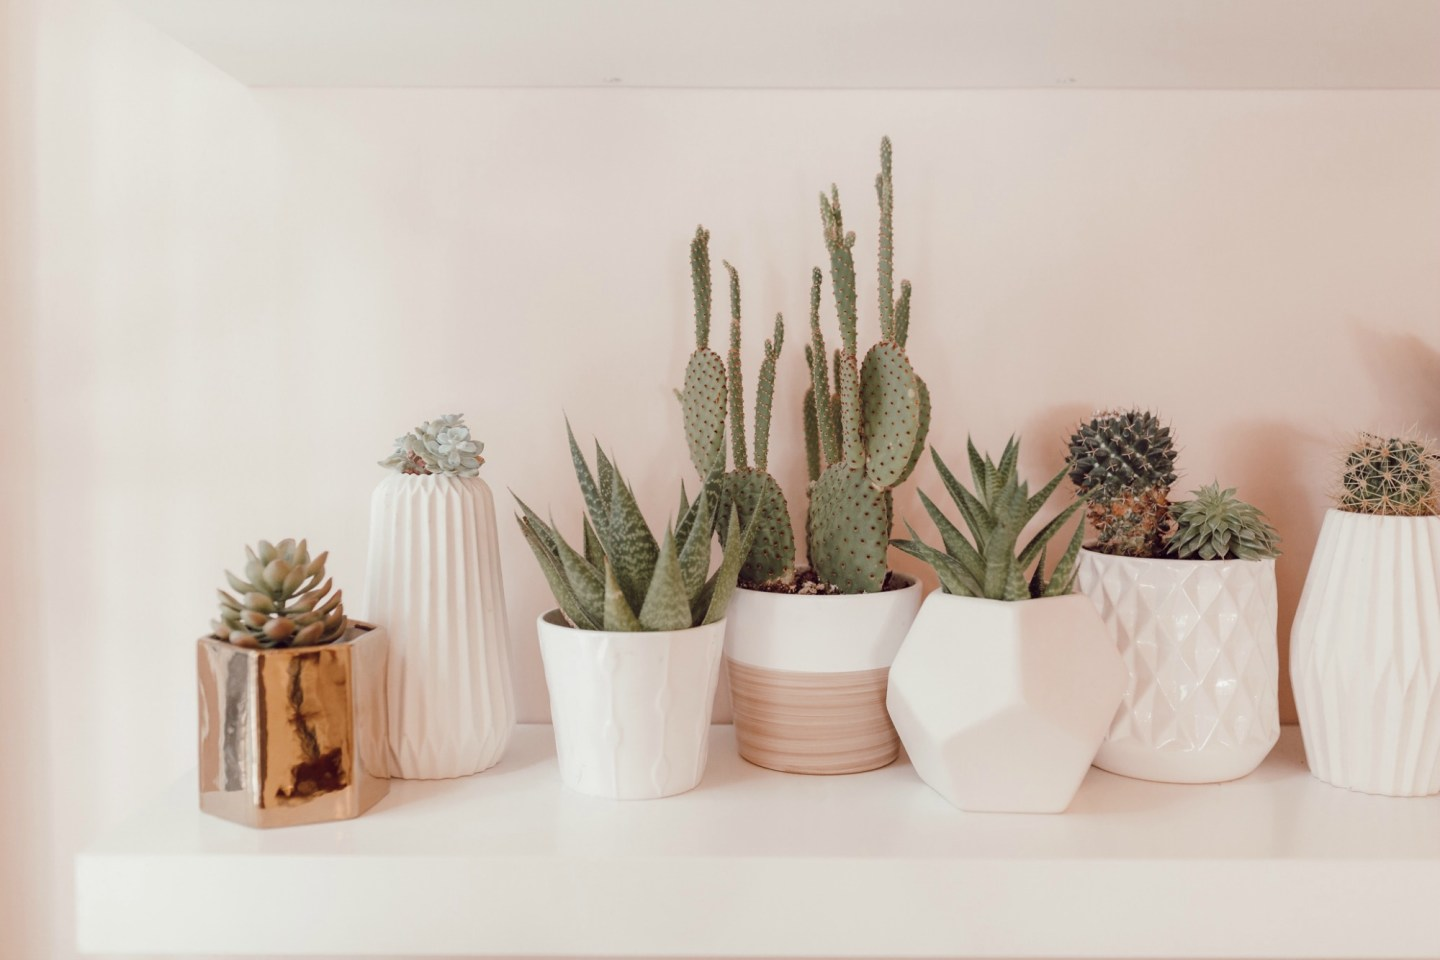 Cactus collection on JanuaryHart.com